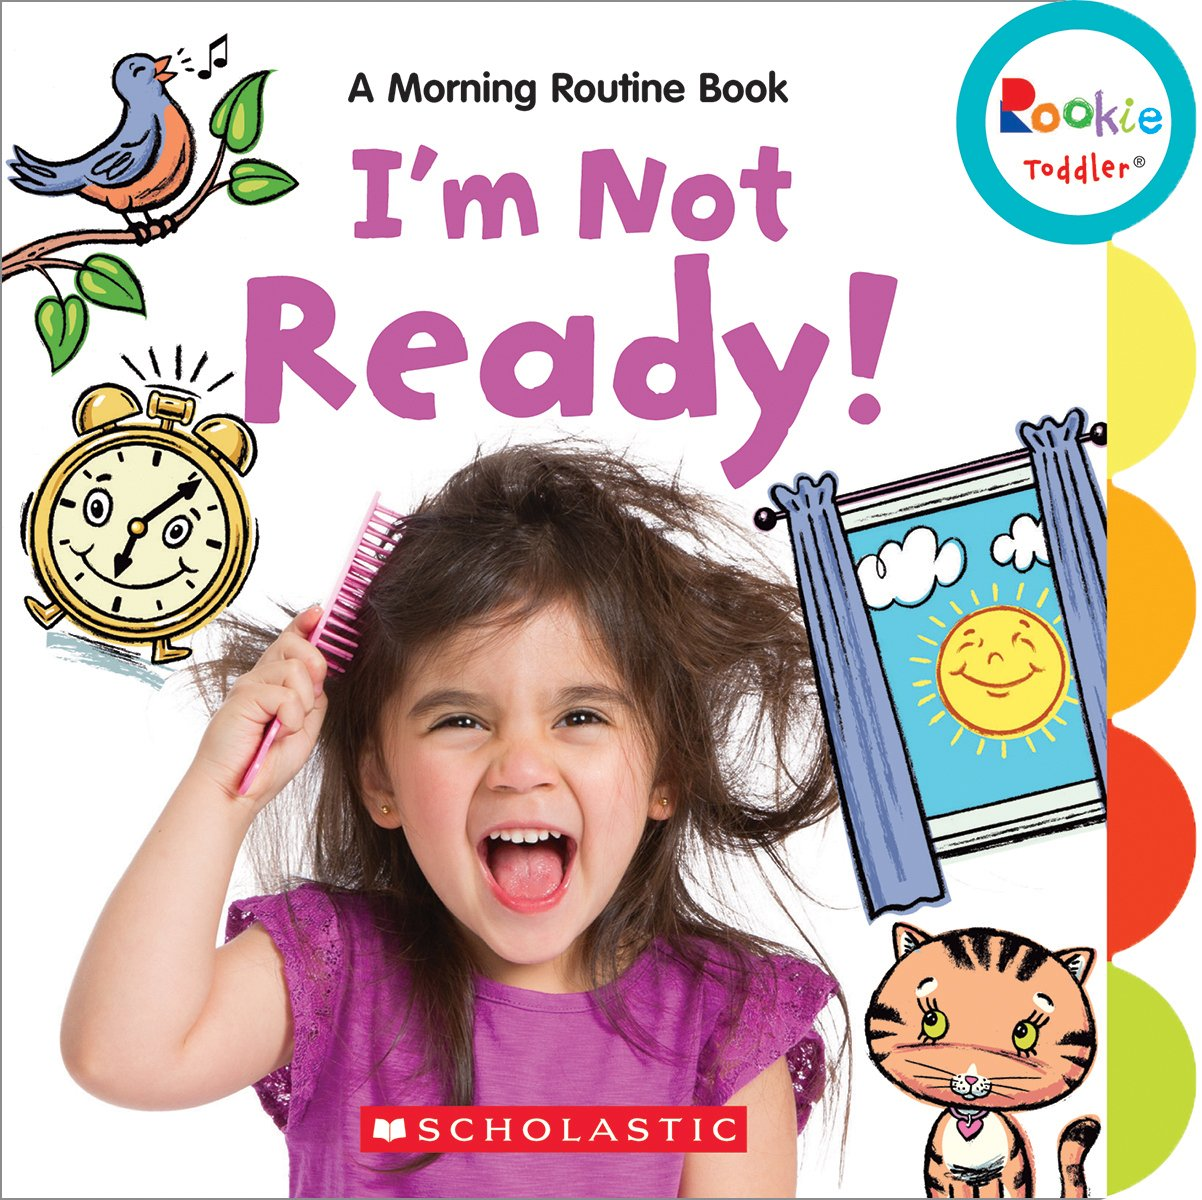 I'm Not Ready!: A Morning Routine Book (Rookie Toddler)